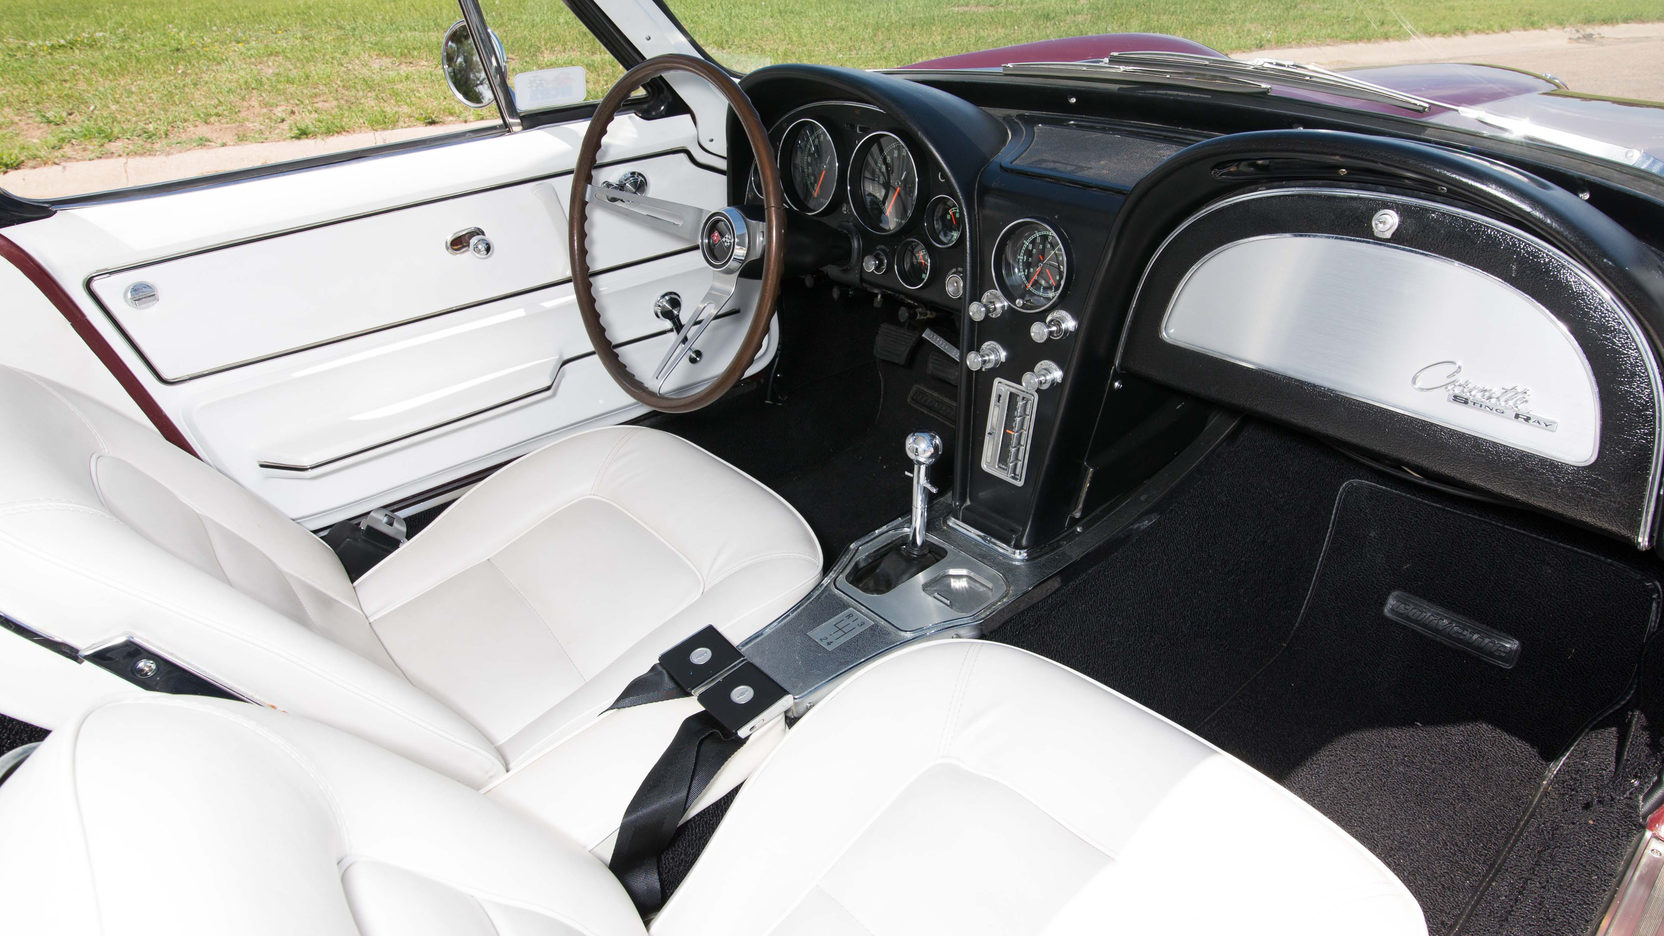 The interior of the Corvette was purposeful and practical. Instruments are directly in the driver's line of sight and are simple, large and clear.